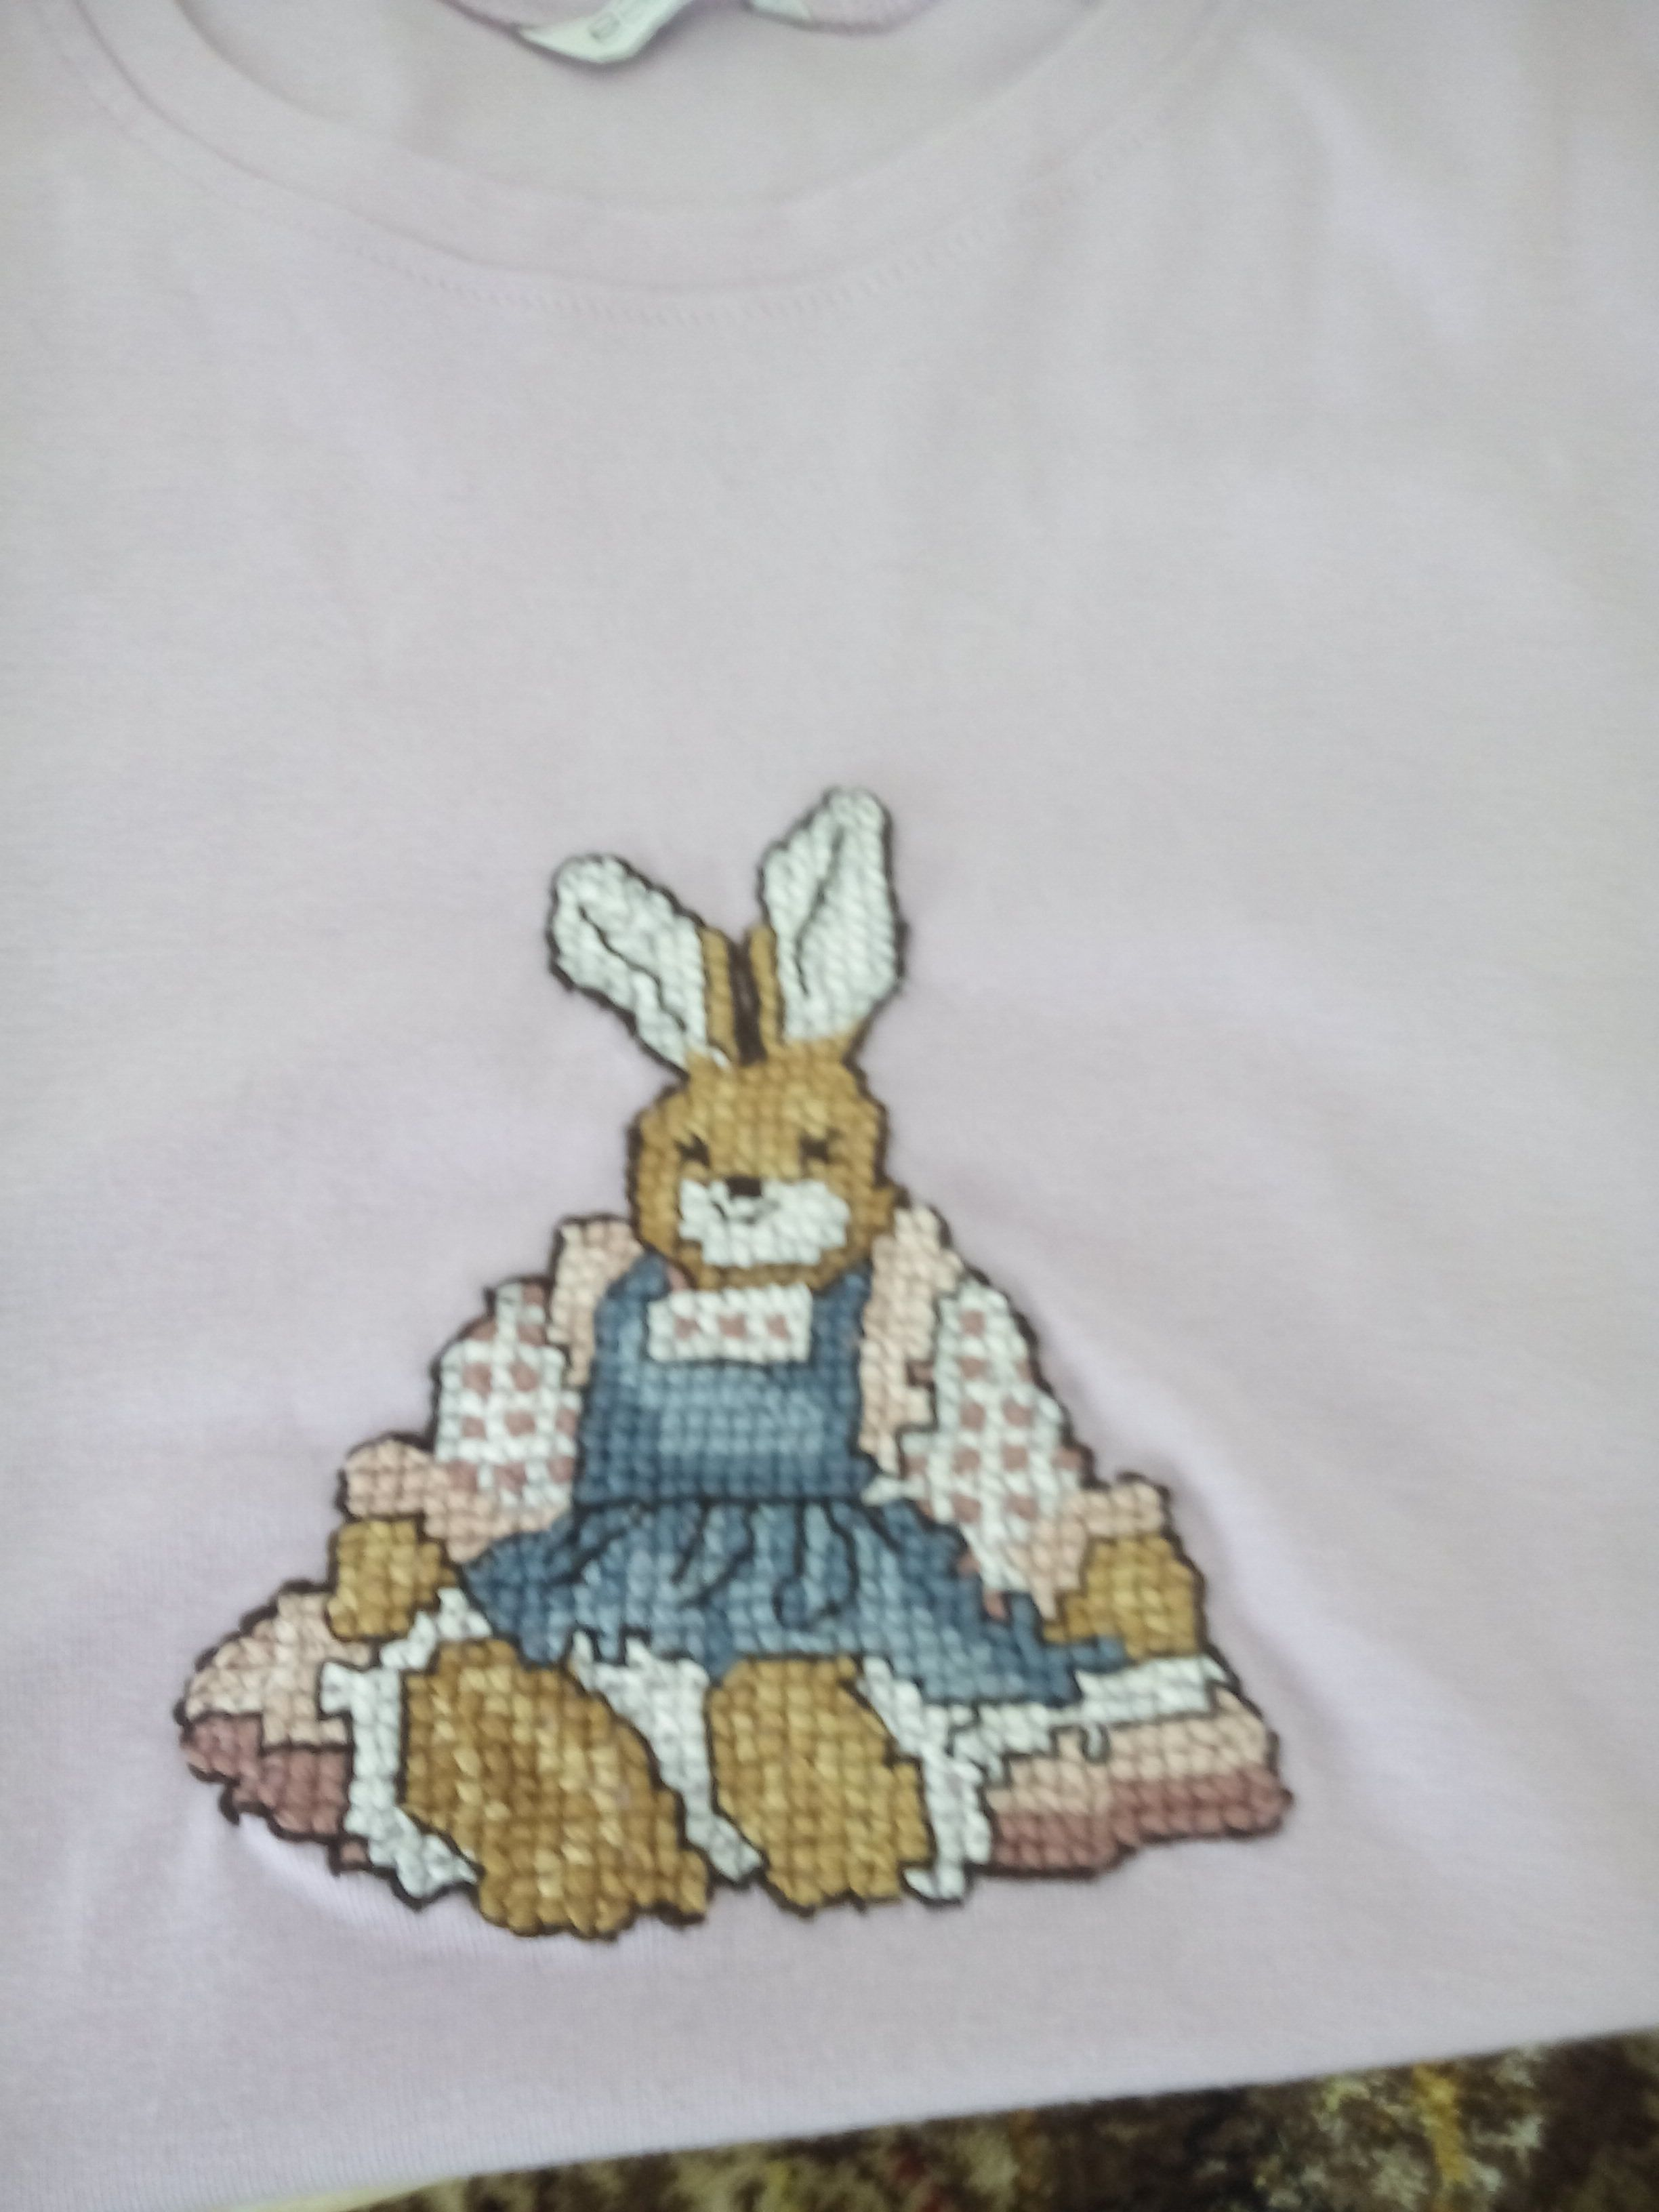 Waste canvas worked in cross stitch onto a t-shirt